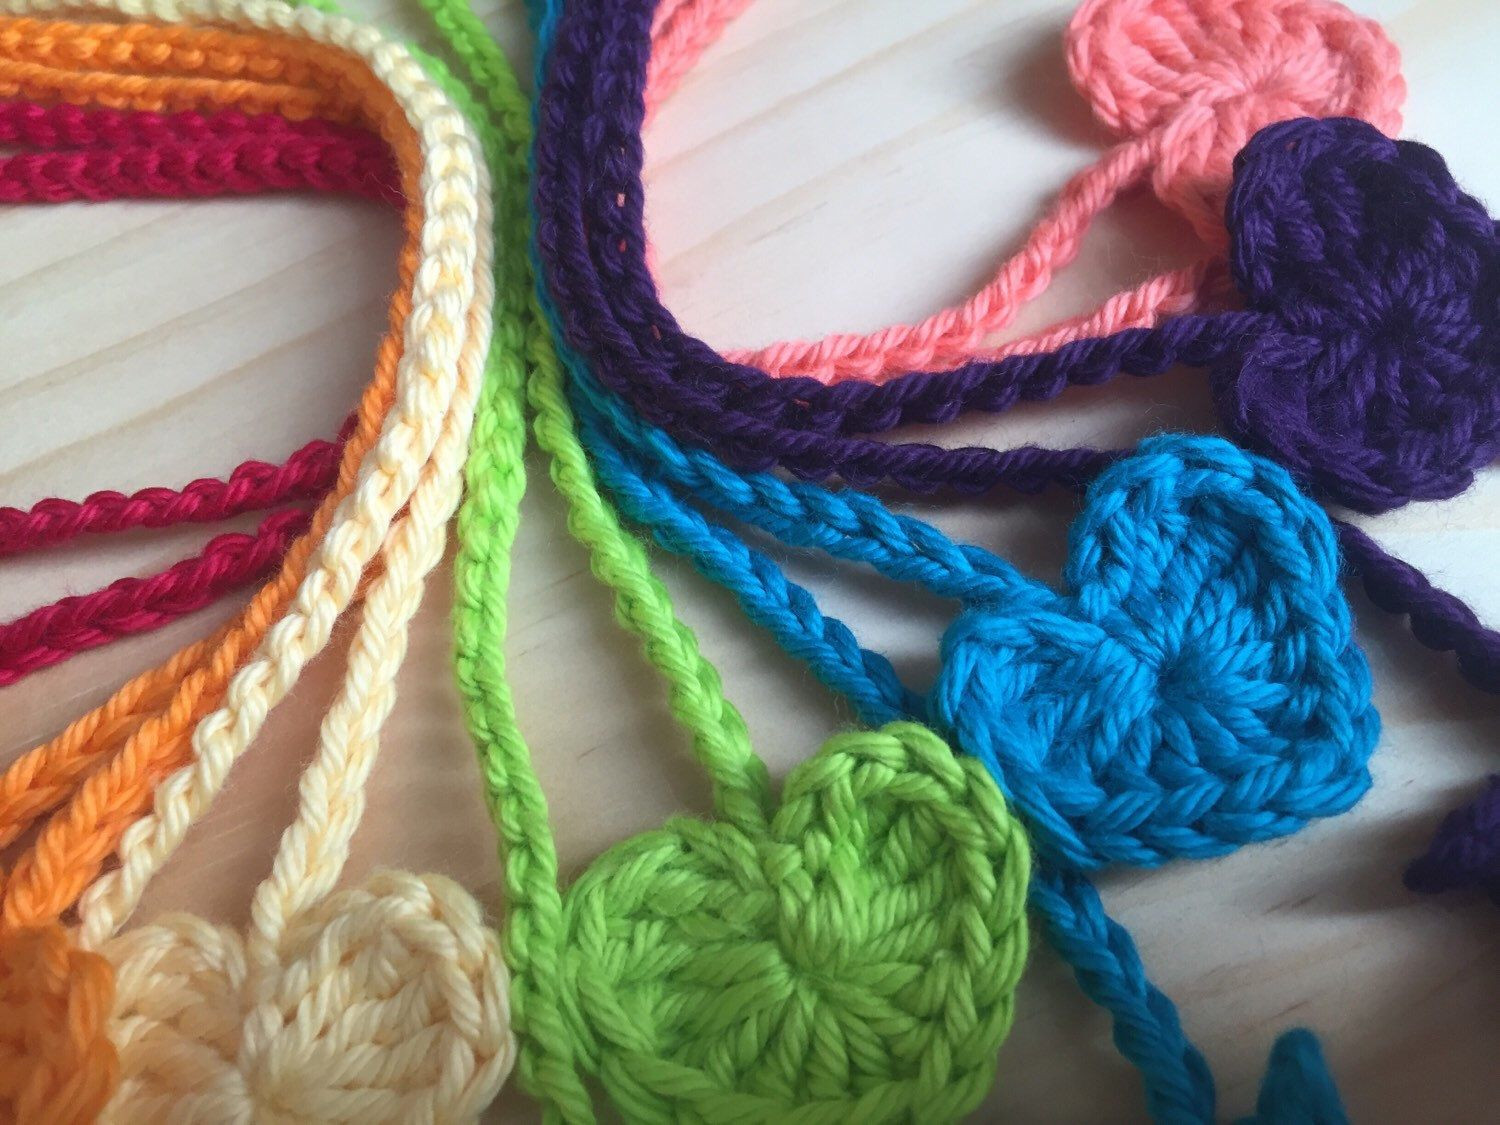 New Heart Umbilical Cord Tie Umbilical Cord Tie Crochet Crochet Cords Of Attractive 49 Ideas Crochet Cords